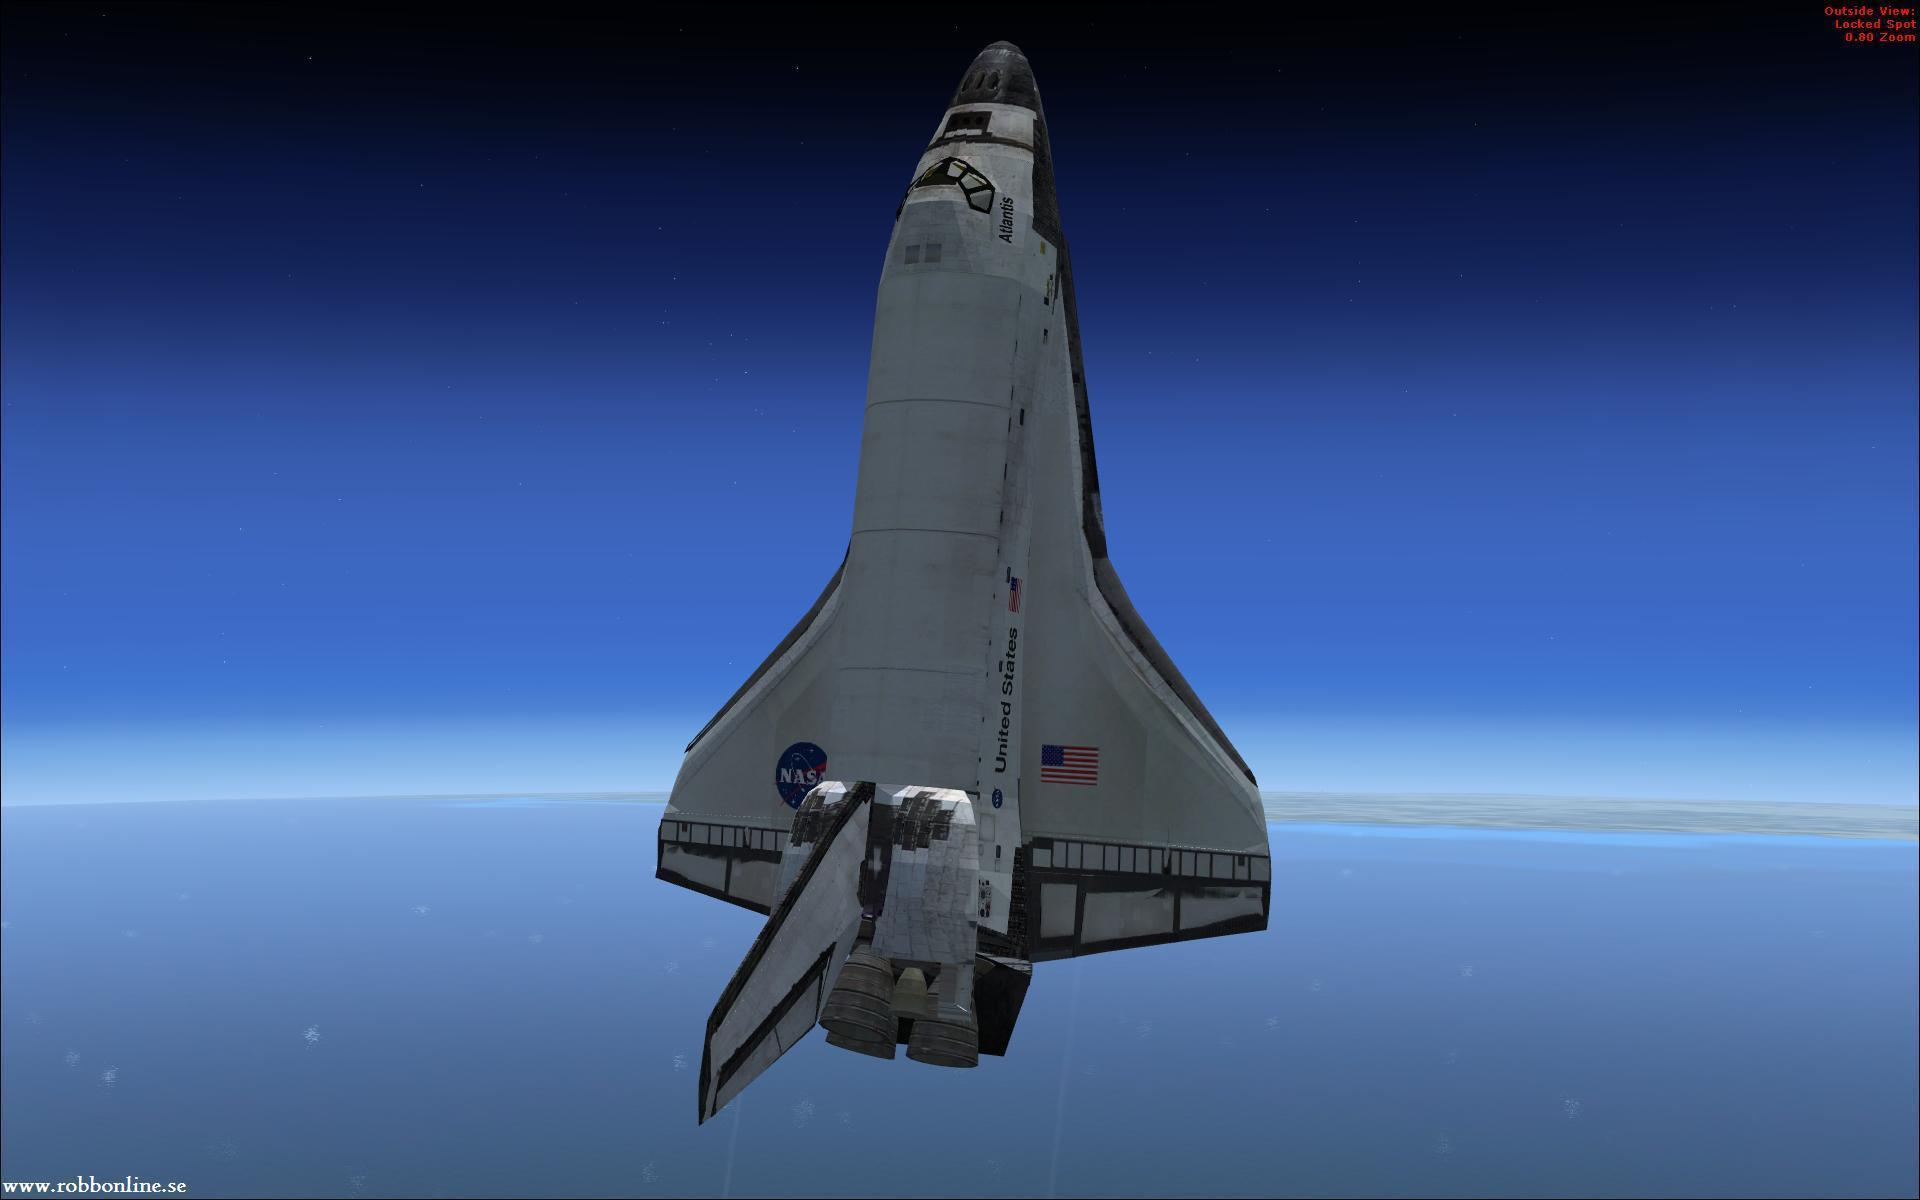 space shuttle space background - photo #12